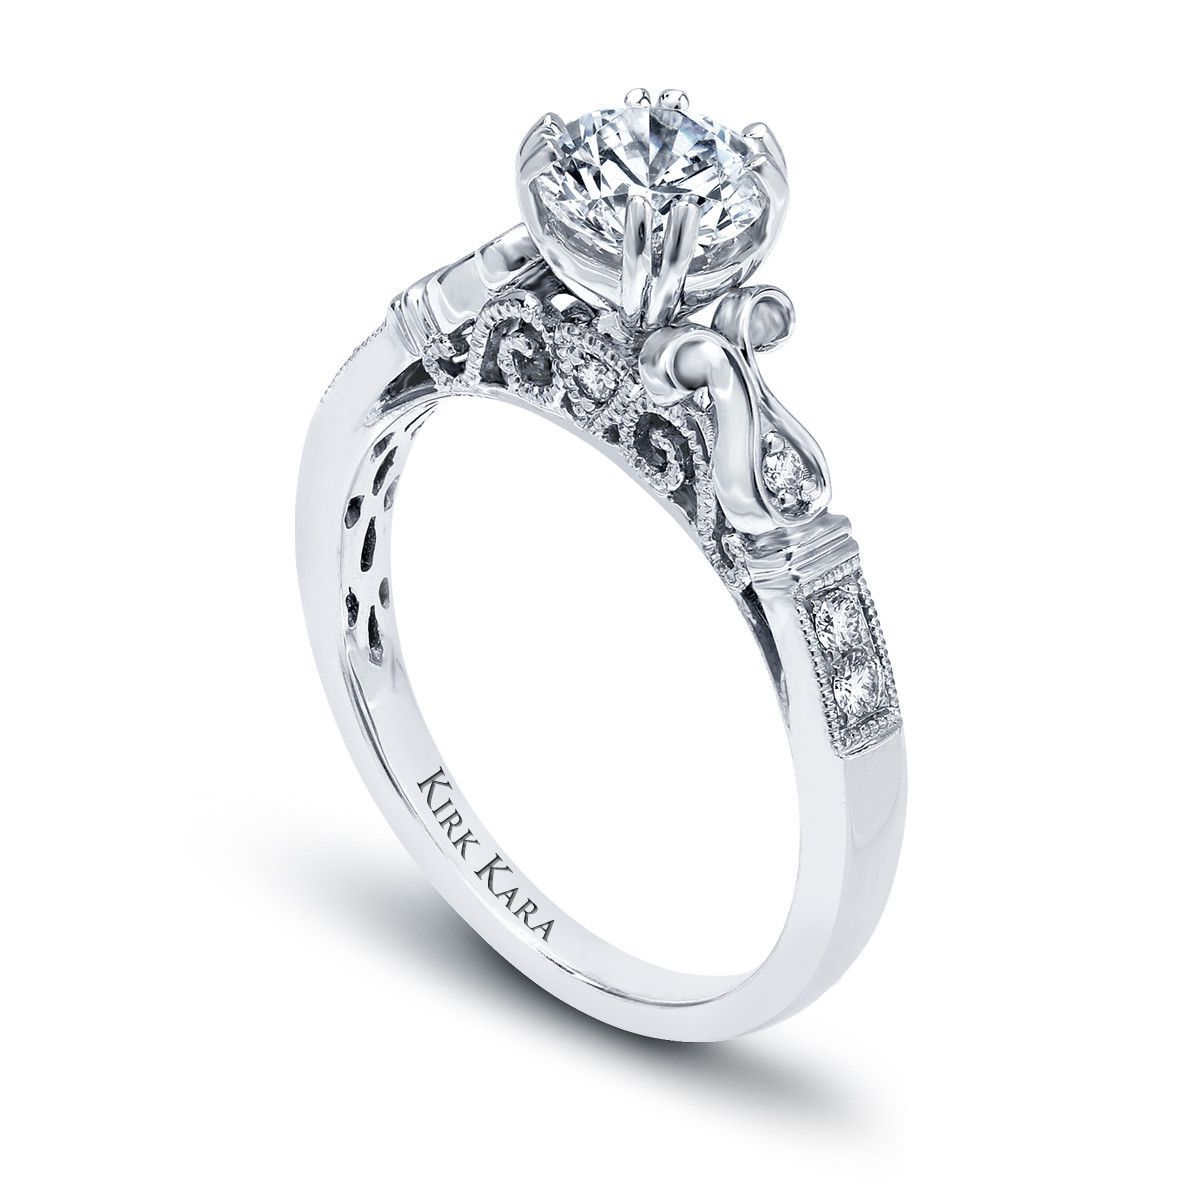 Kirk Kara Handcrafted Pirouetta Diamond Engagement Ring from the Kirk Kara Pirouetta Collection Crafted with 0.12 Carats of Diamonds.